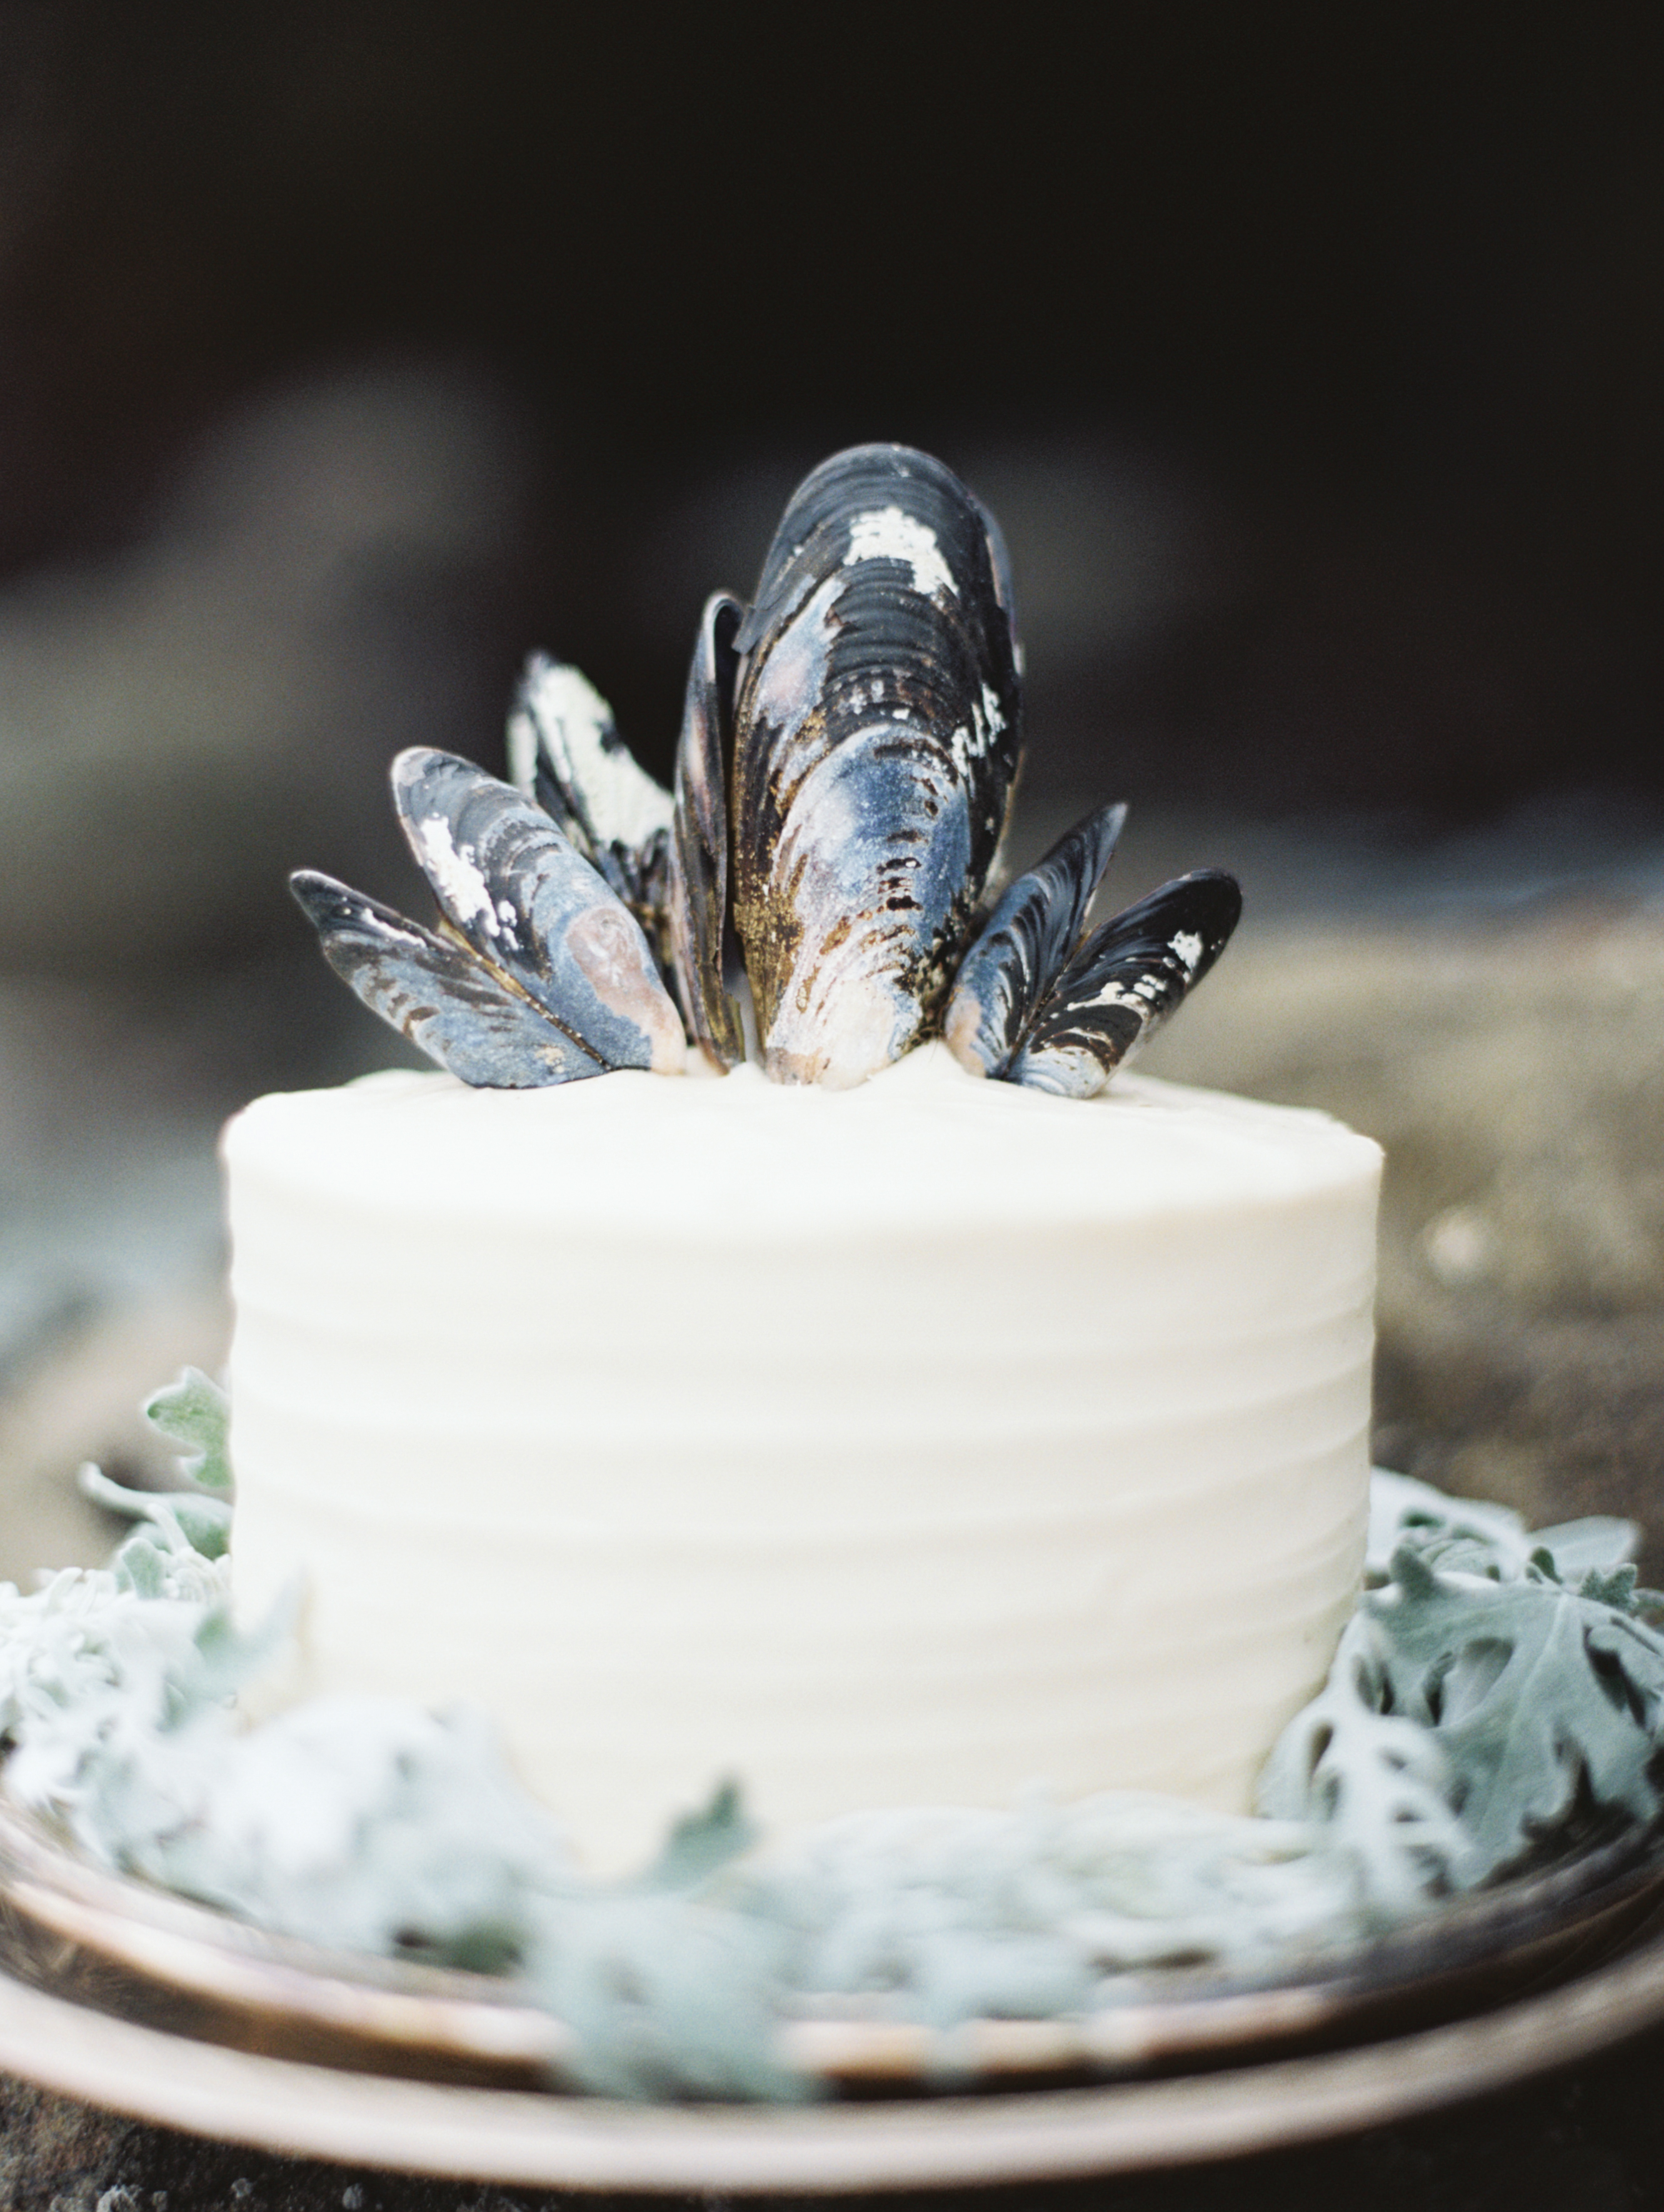 Single-Tiered Wedding Cake Topped with Shells